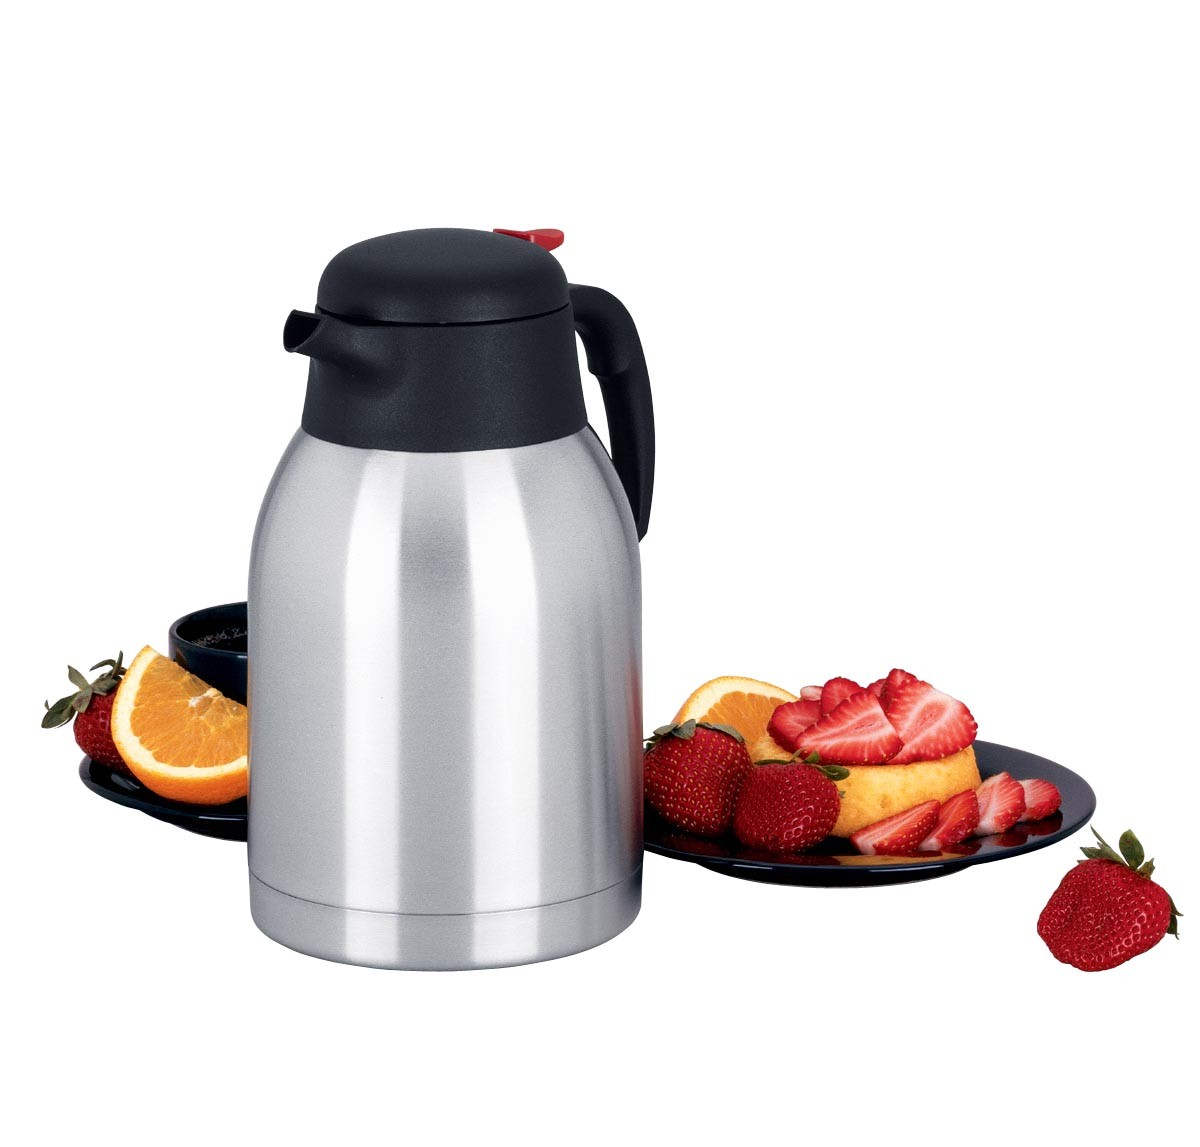 Focus Foodservice KPW9101 2 Liter Thermal Carafe with Trigger - 1/2 doz